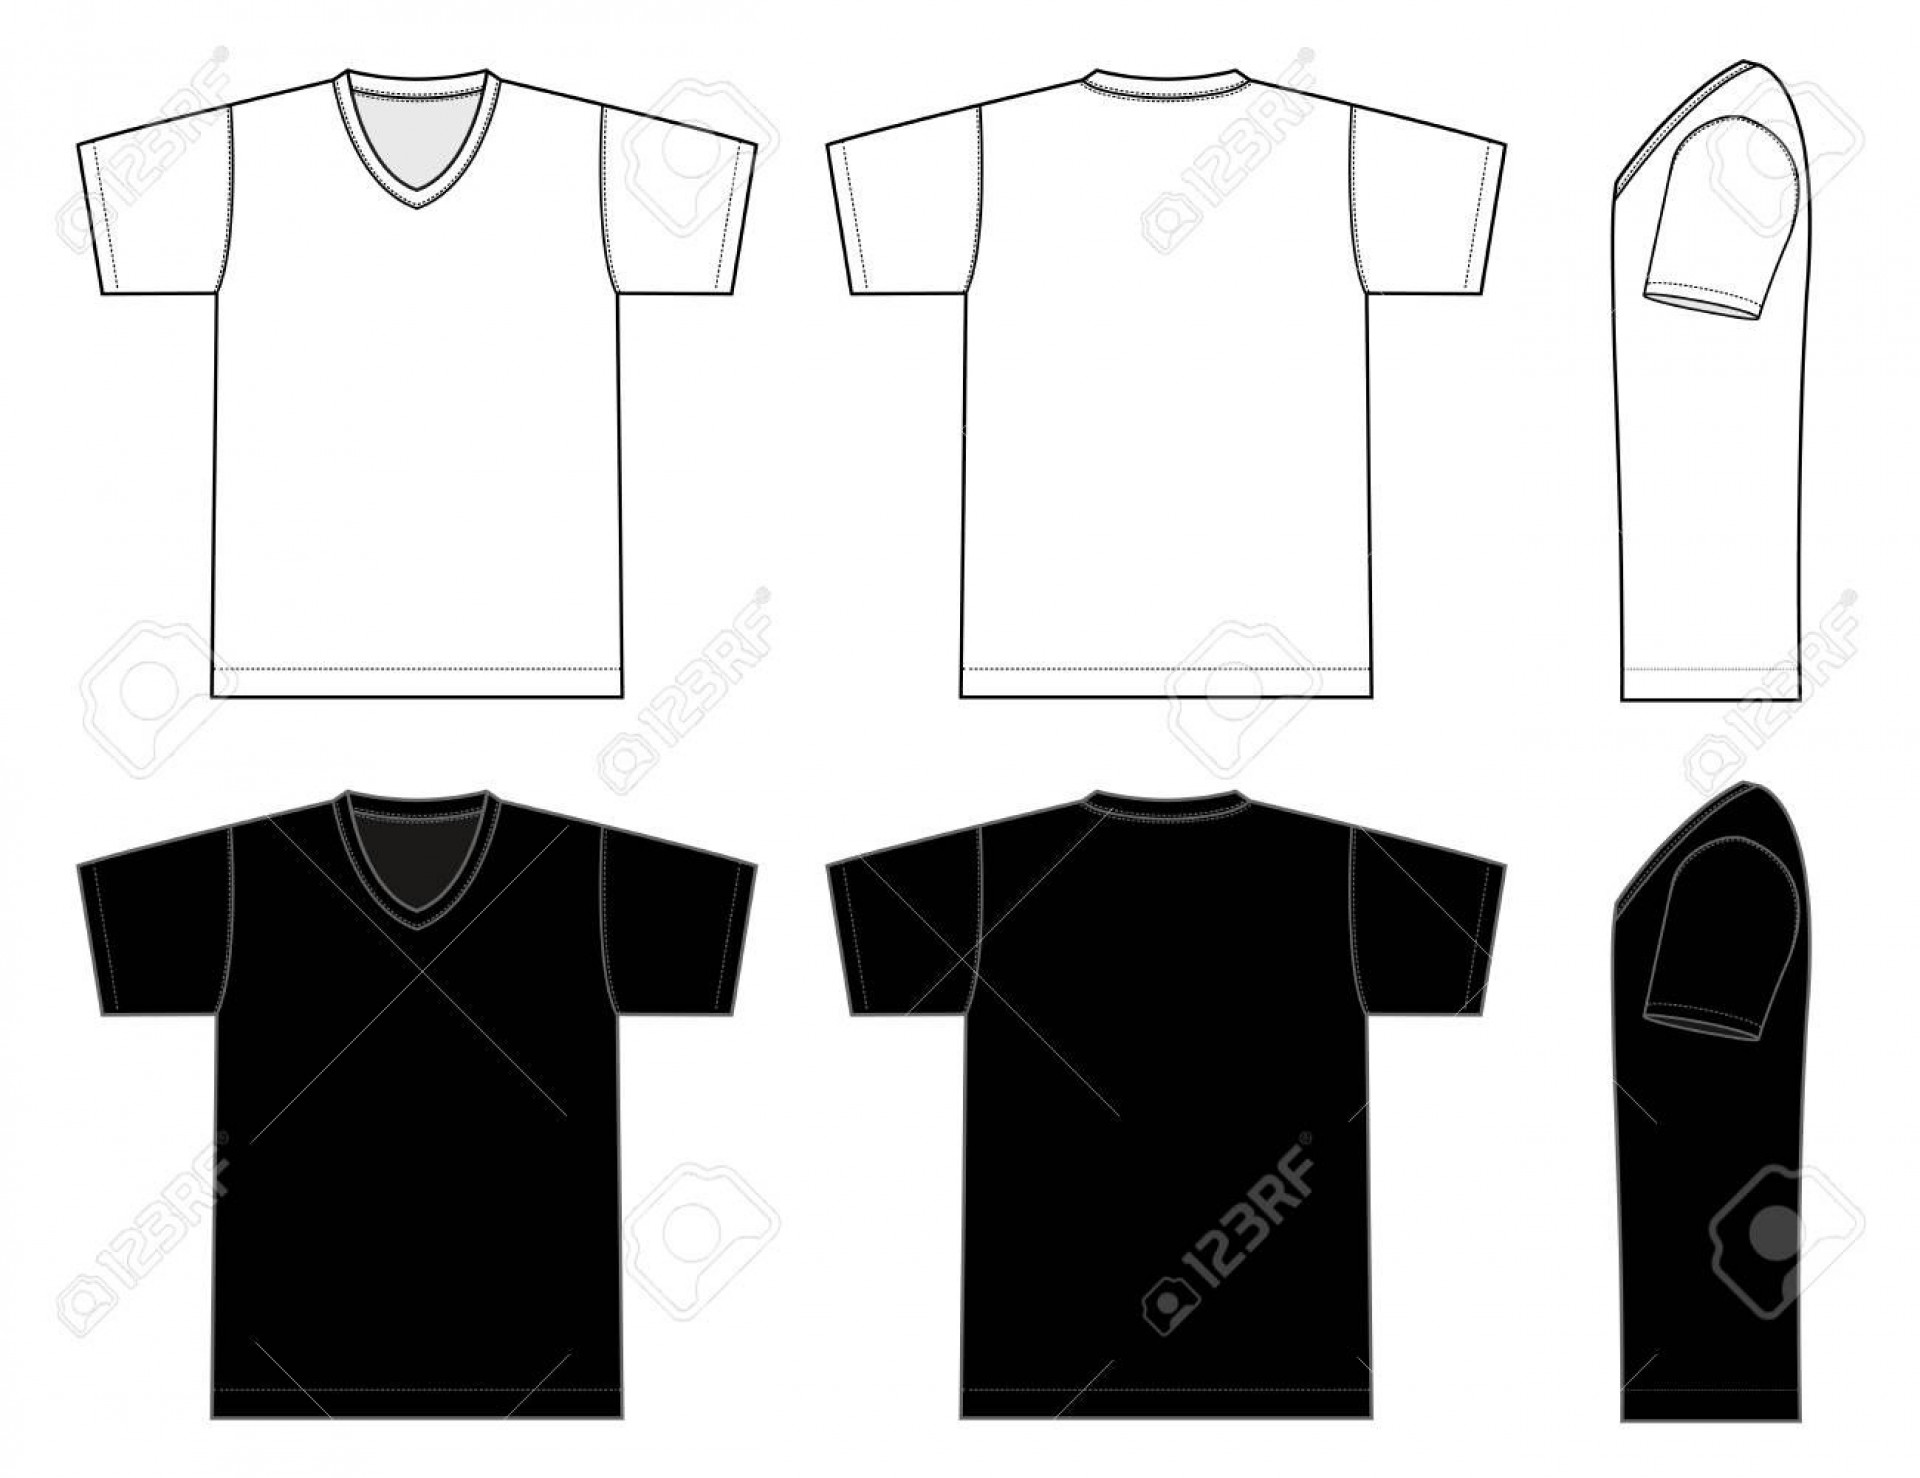 002 Incredible T Shirt Template Vector Sample  Black Front And Back Free Download Illustrator1920